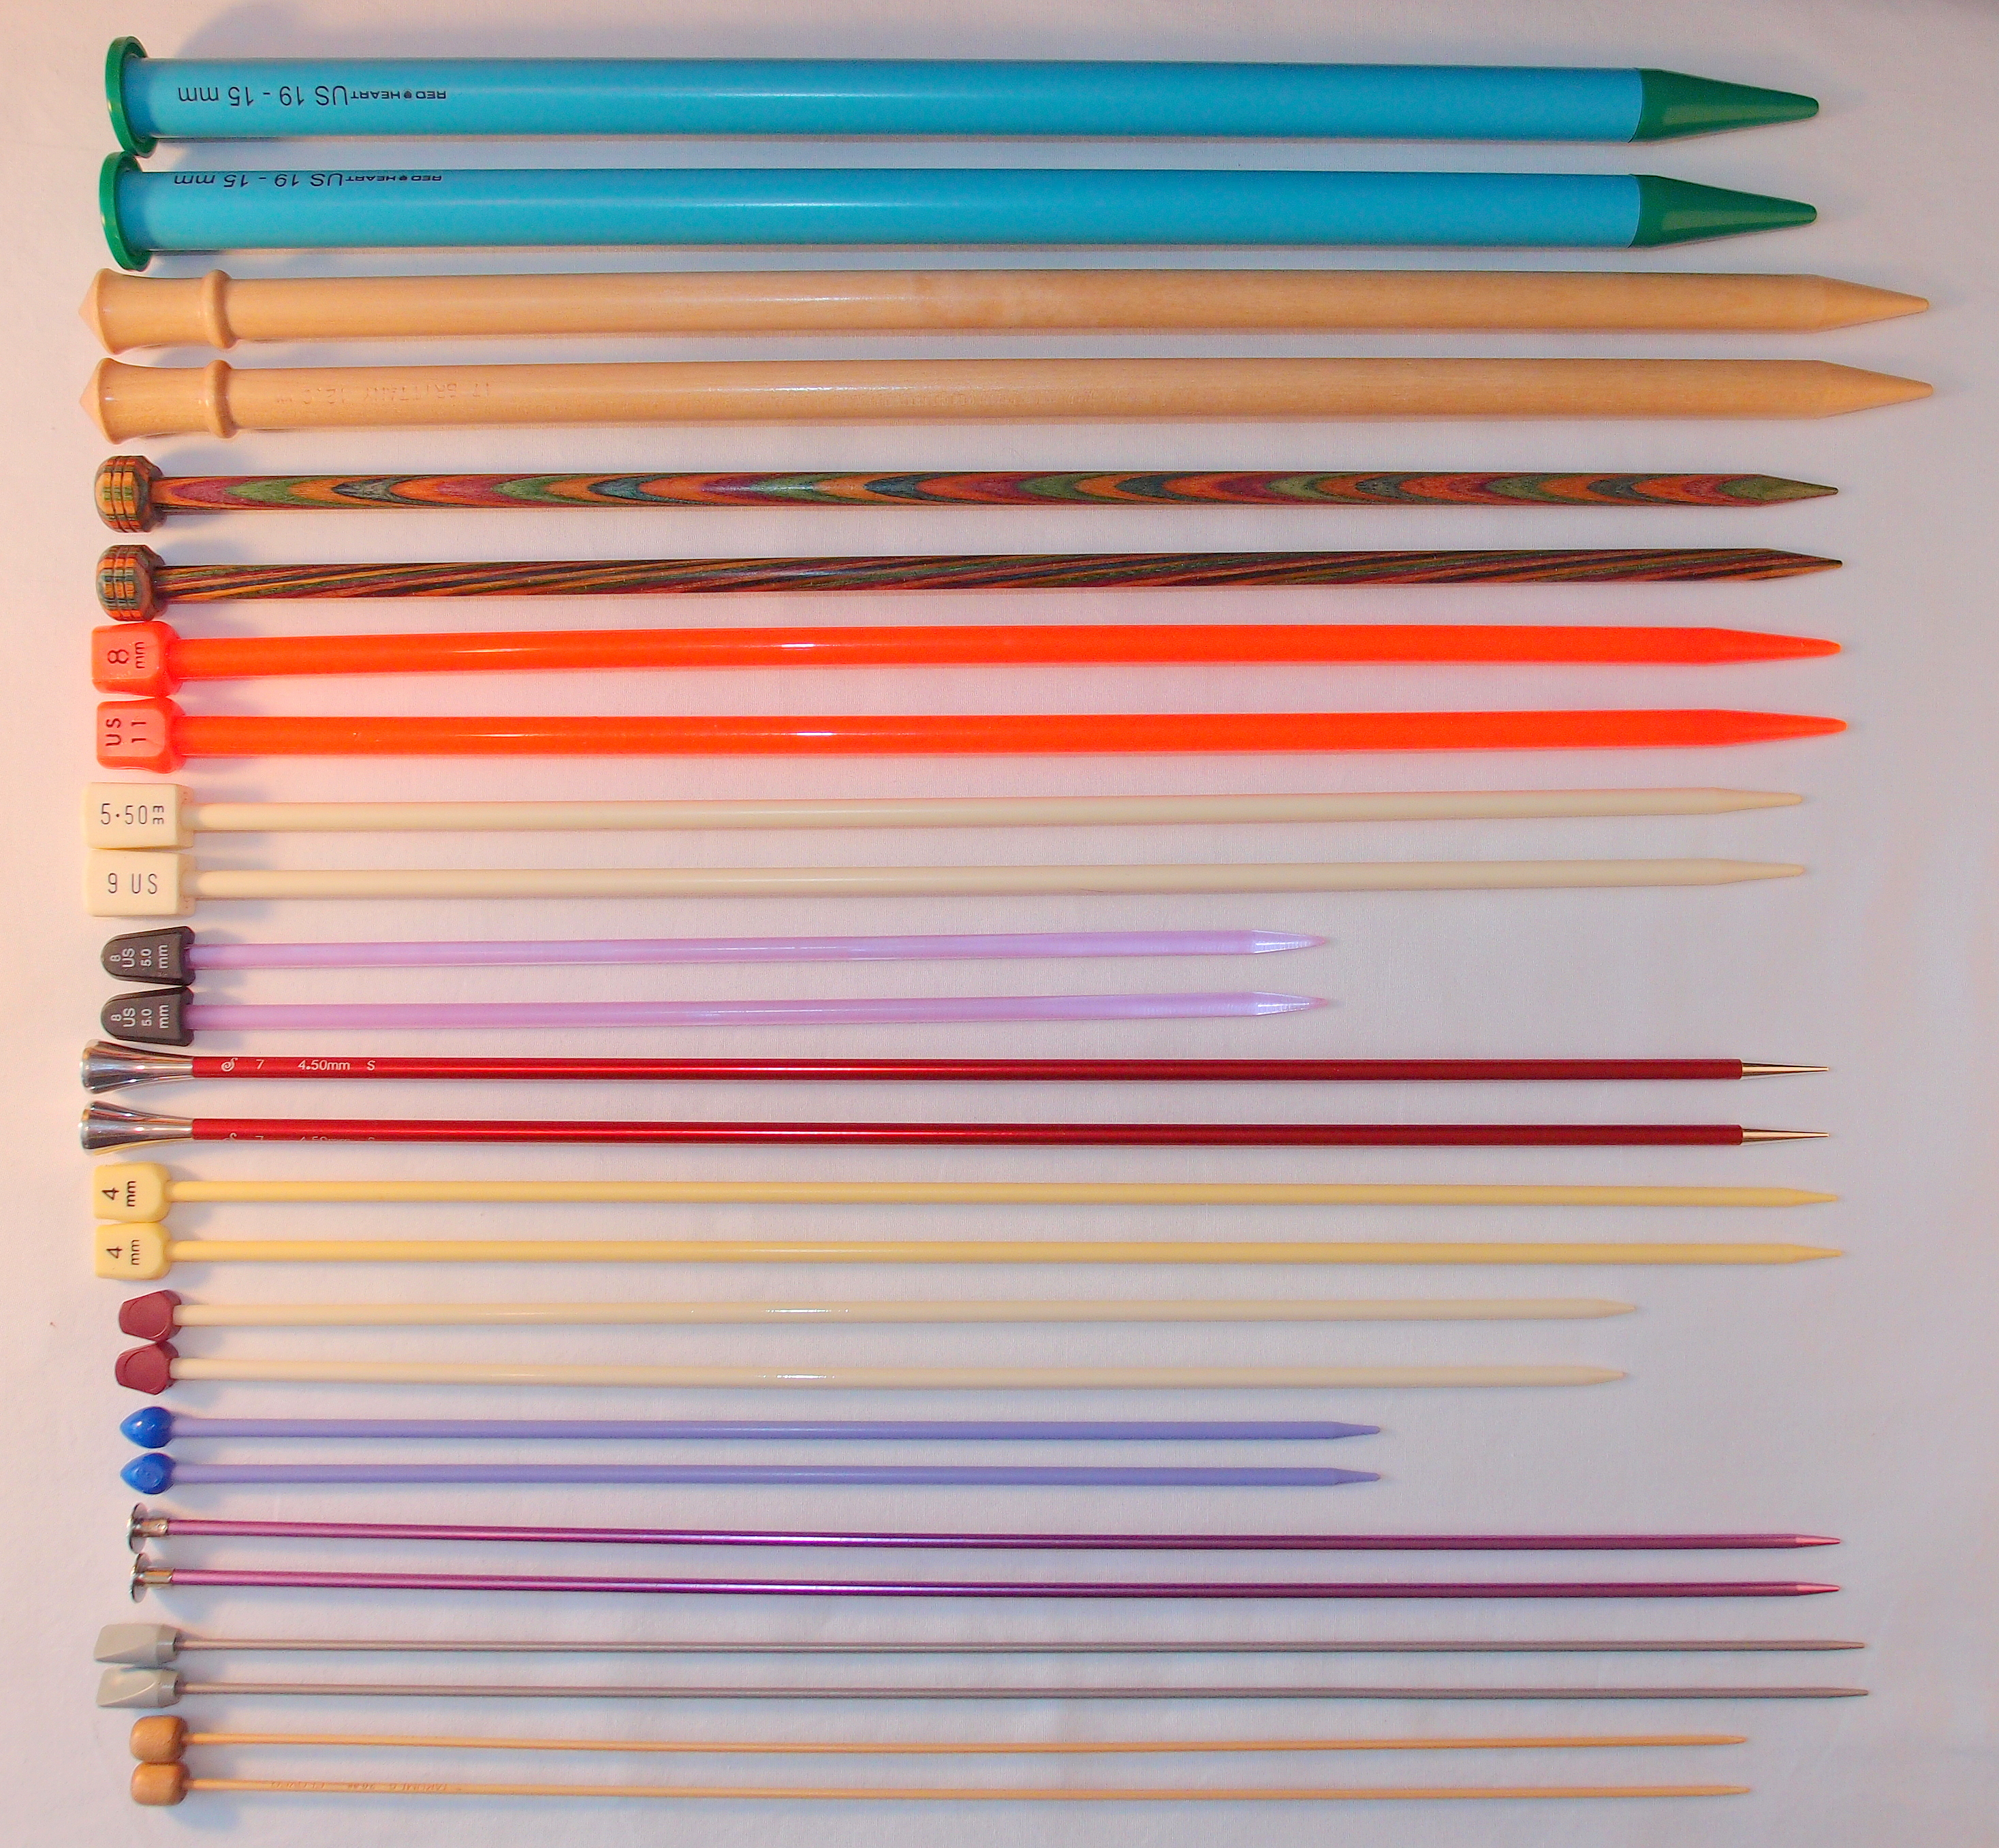 Knitting Needle Sizes : File:Straight knitting needles.JPG - Wikipedia, the free encyclopedia